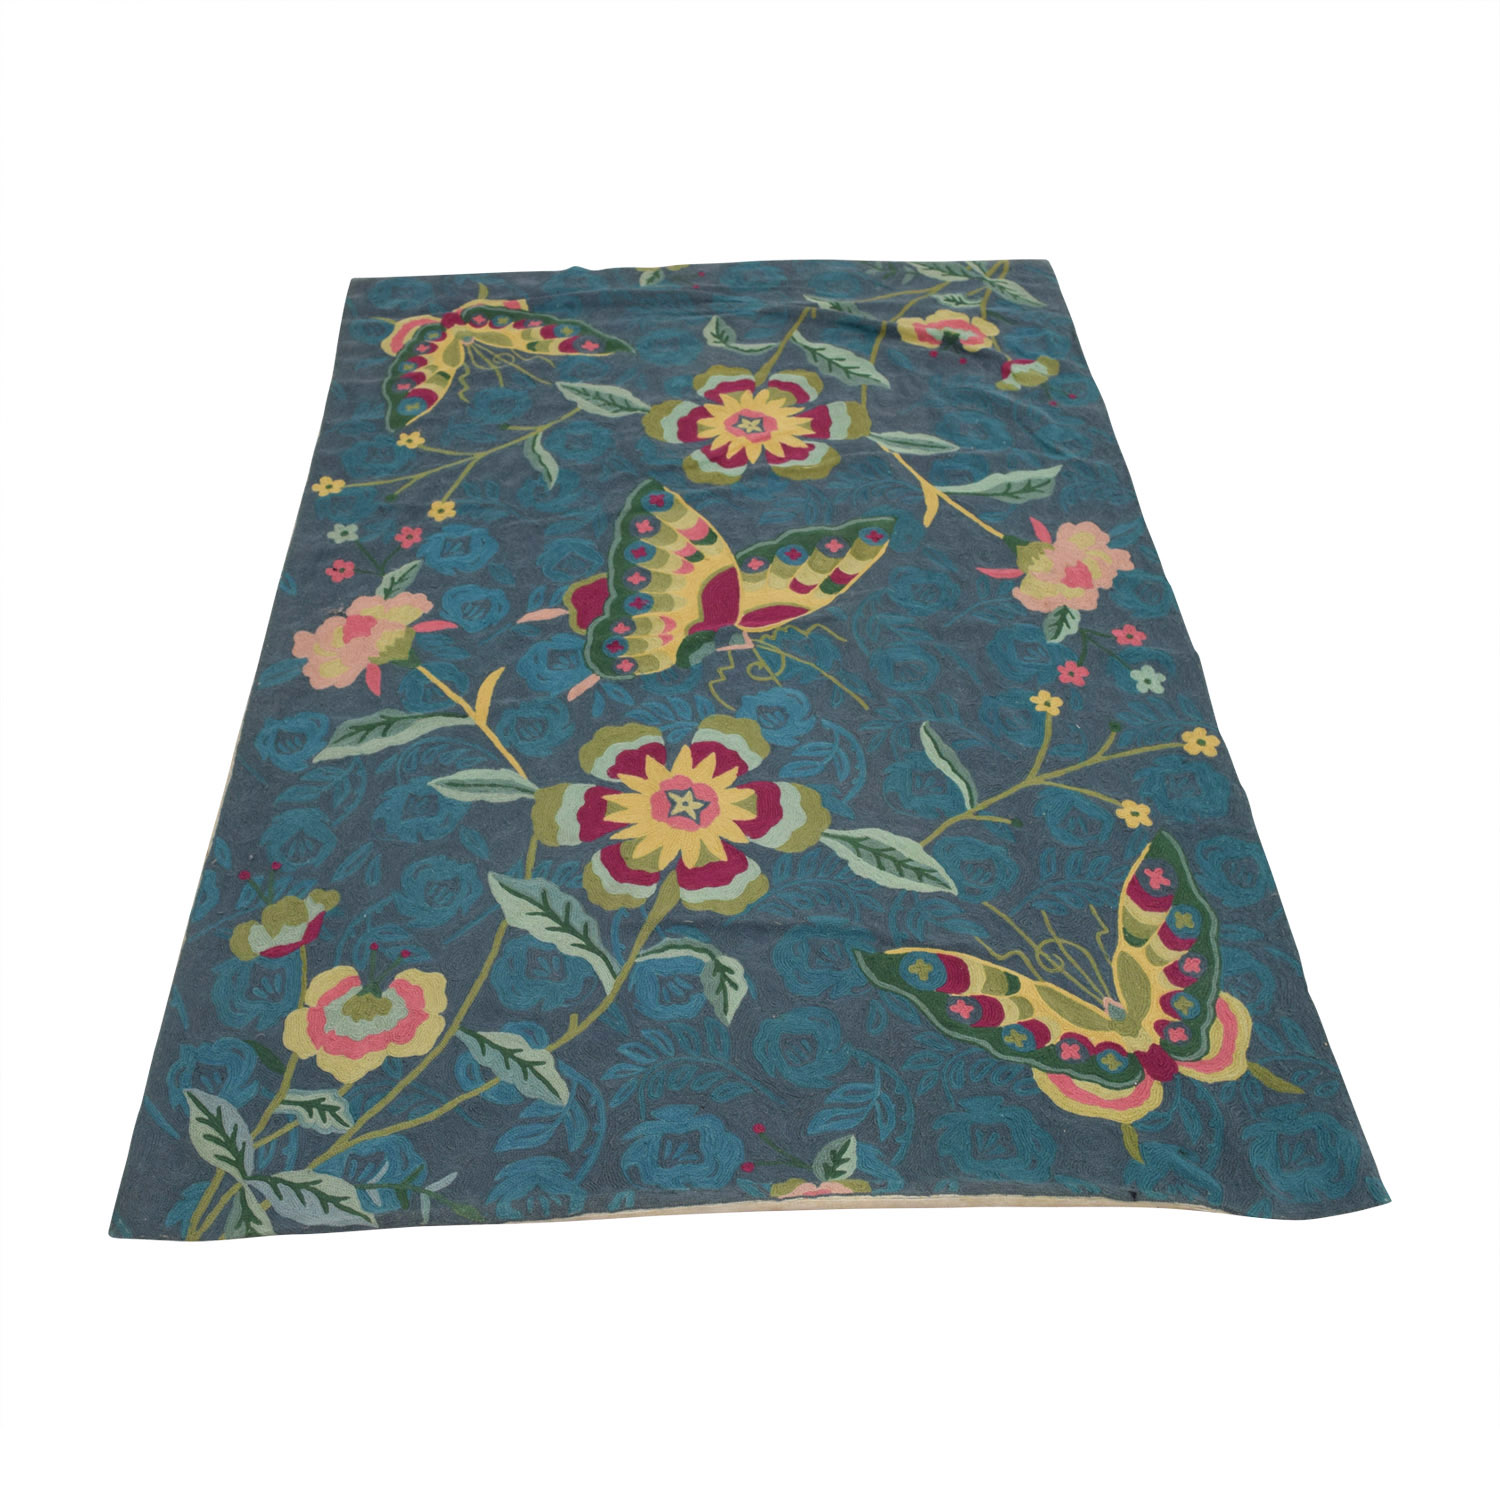 Anthropologie Anthropologie Folkloric Blue Green Floral Rug price